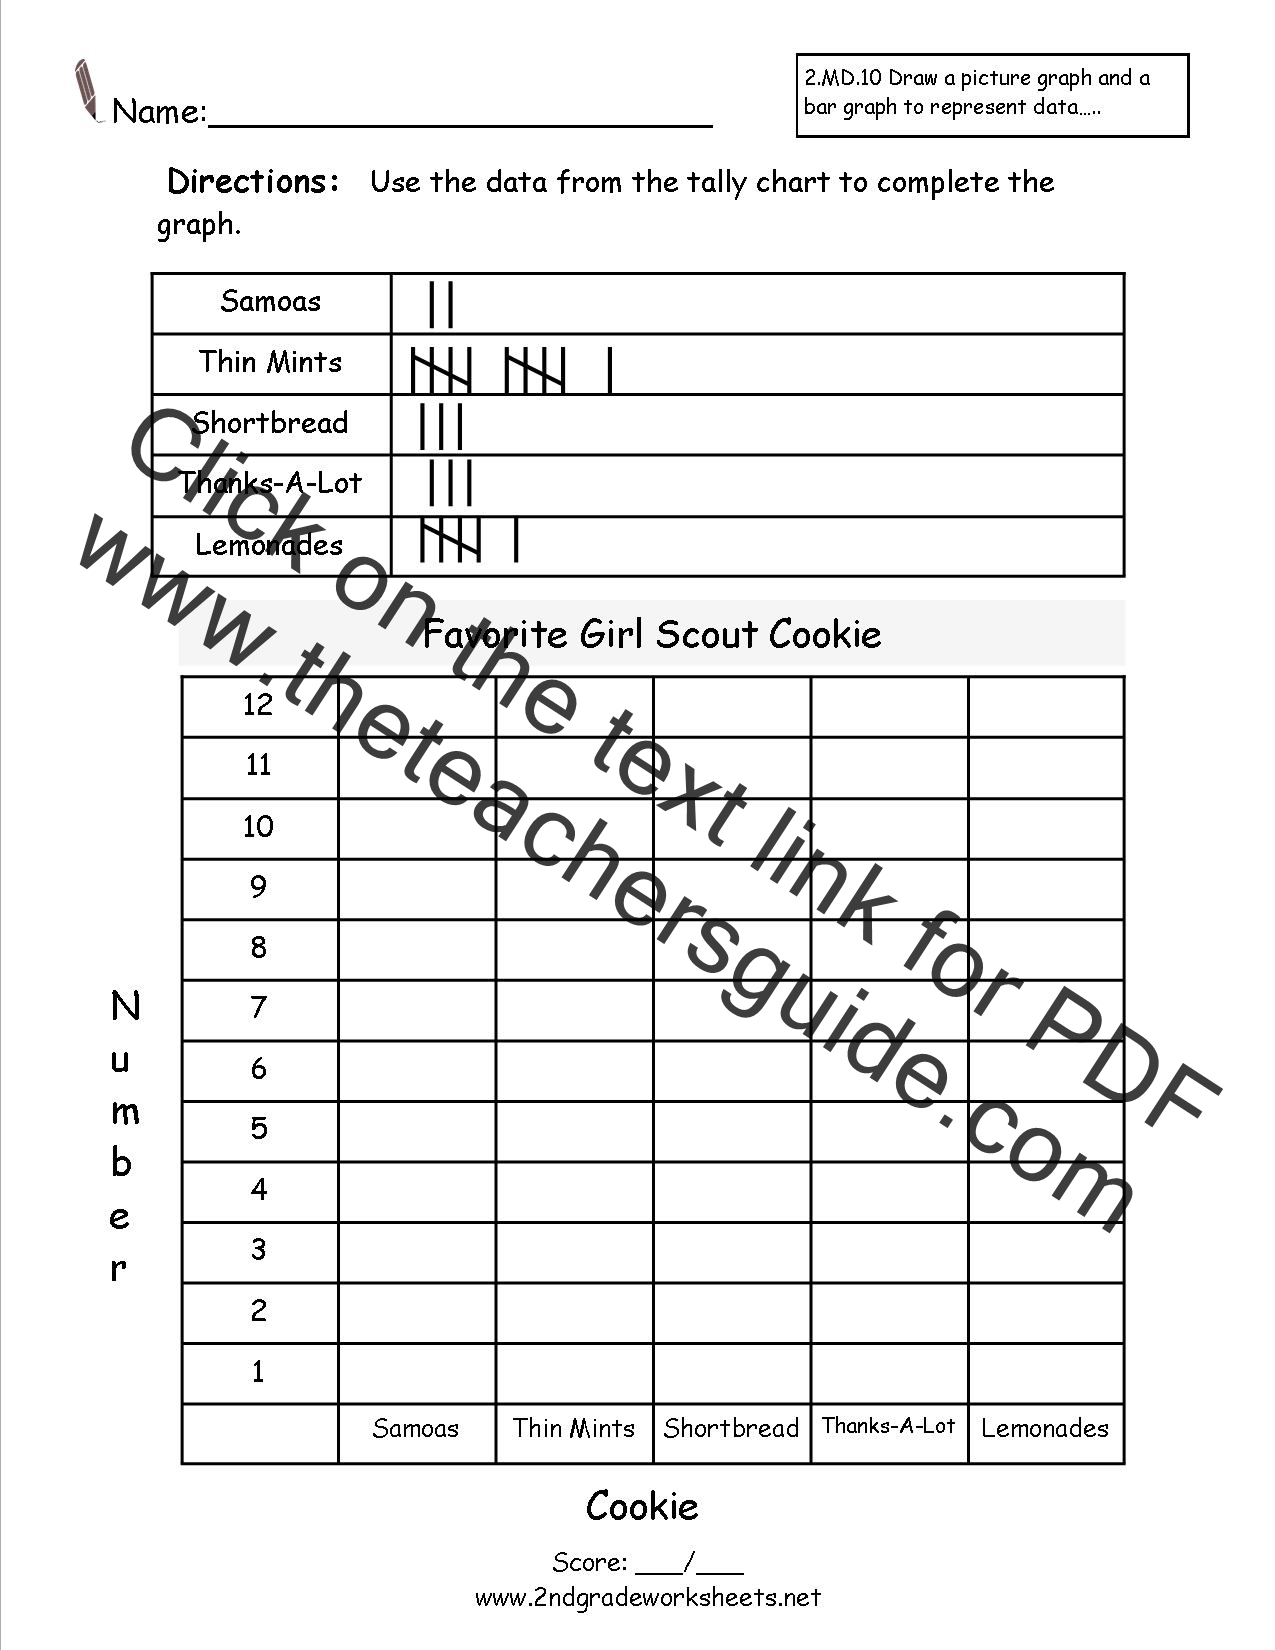 math worksheet : free math worksheets and printouts : Free Math Worksheets For 2nd Grade